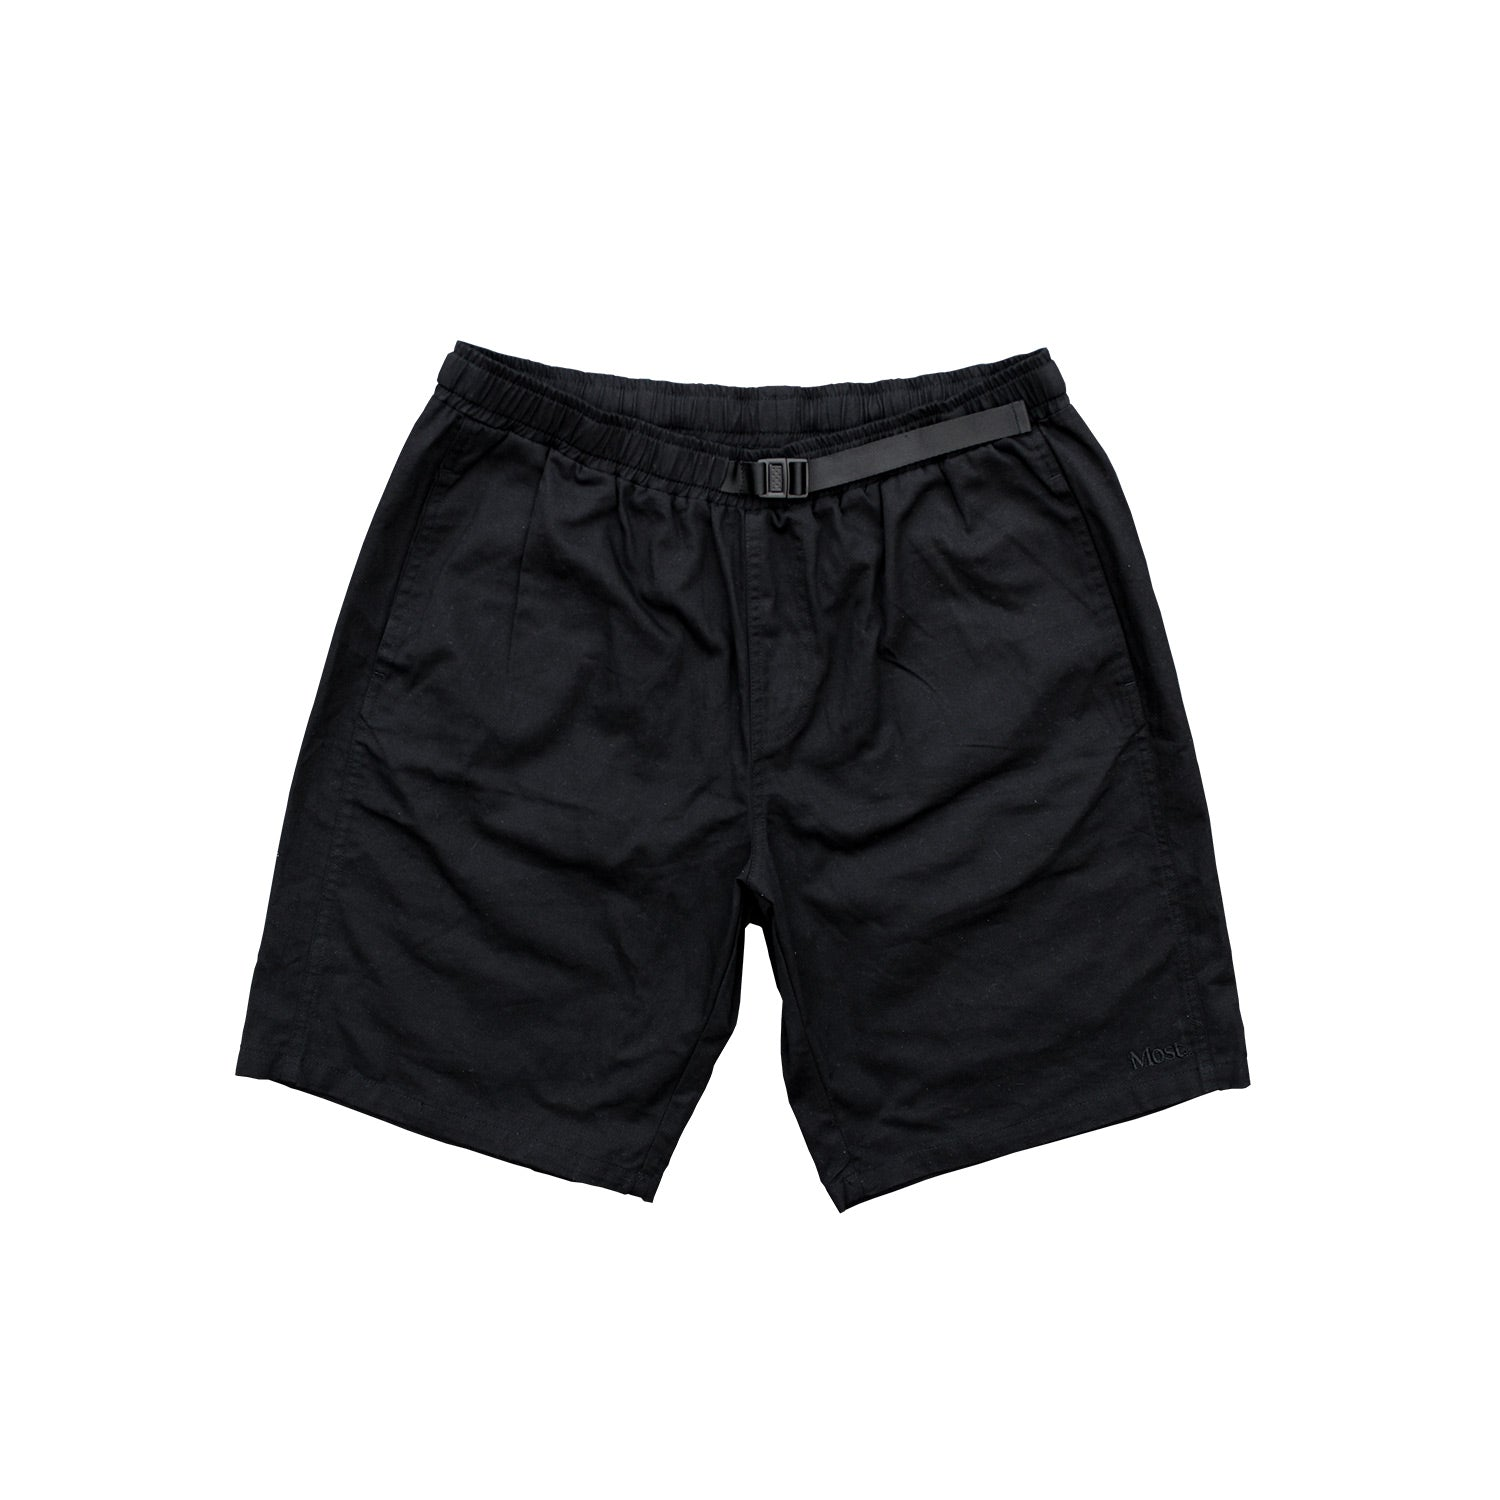 Walk Short - Black